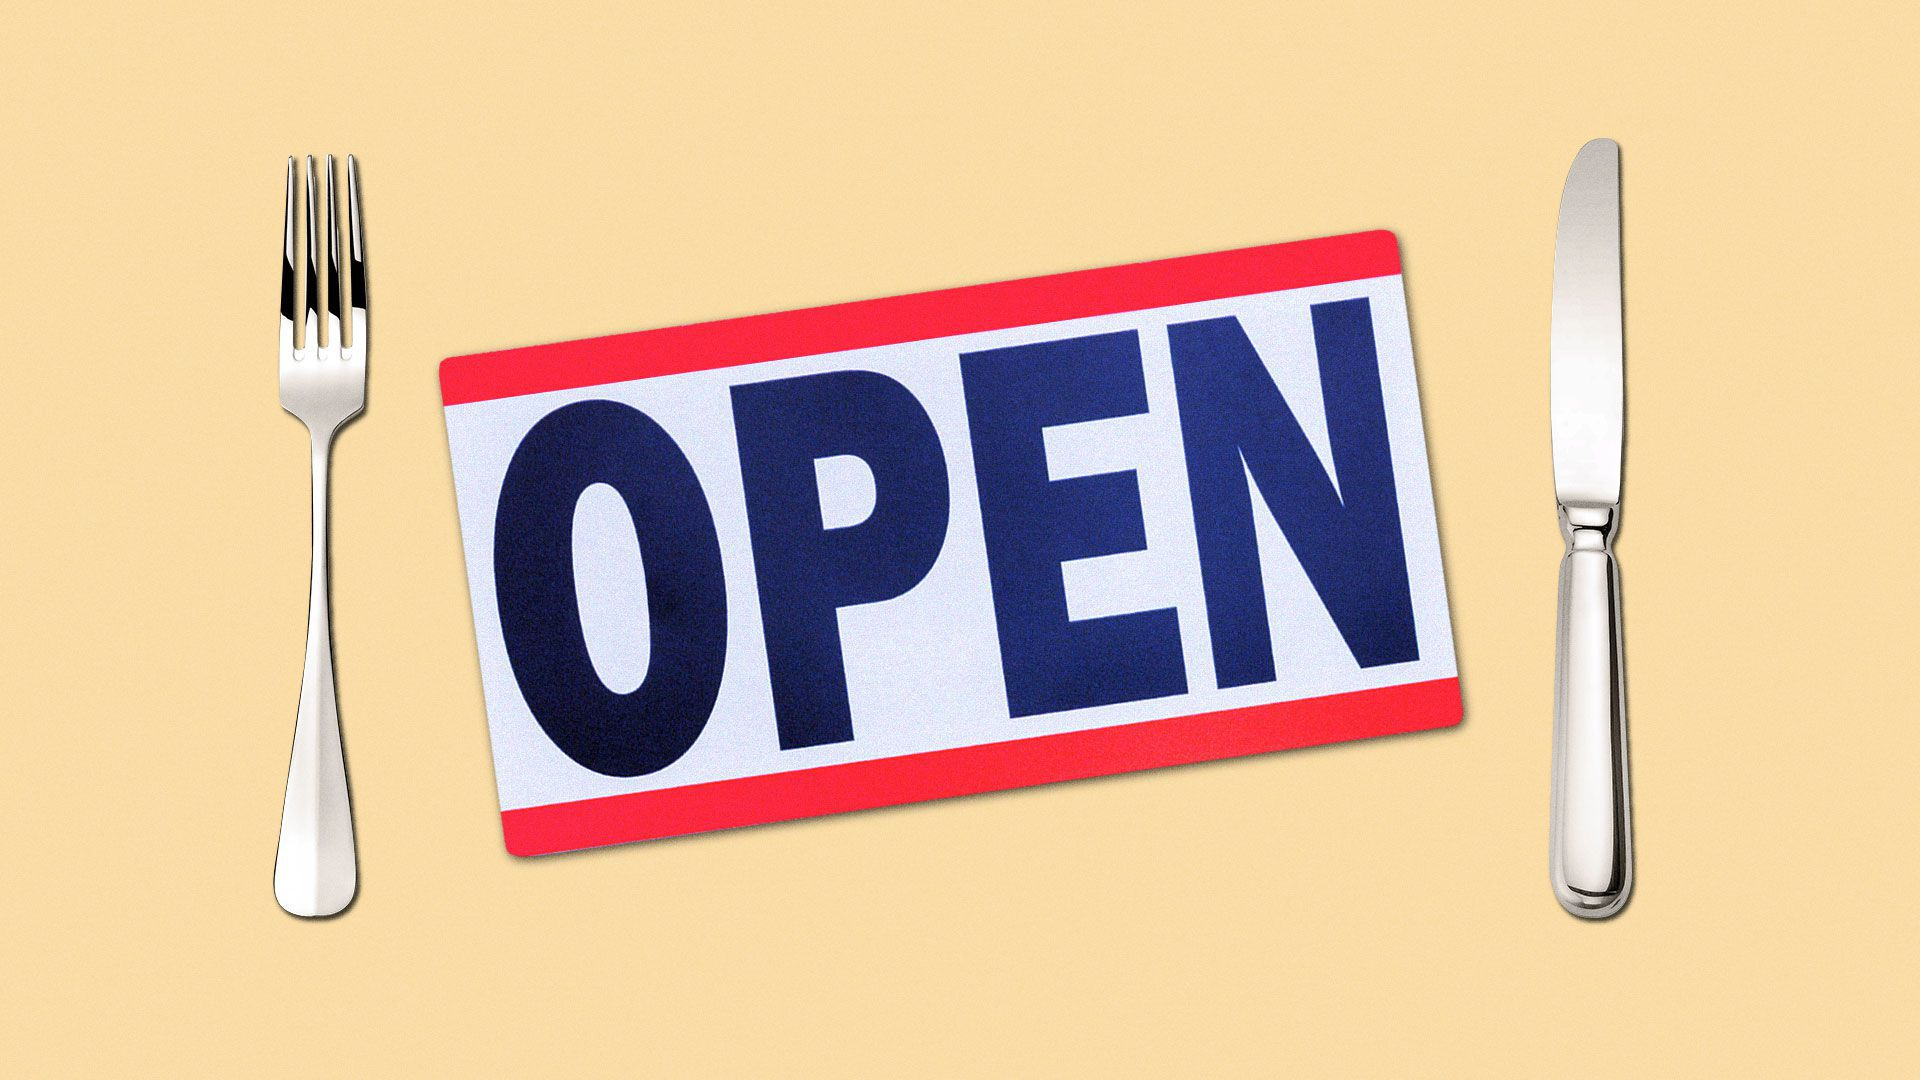 Illustration of an open sign with a fork and knife.